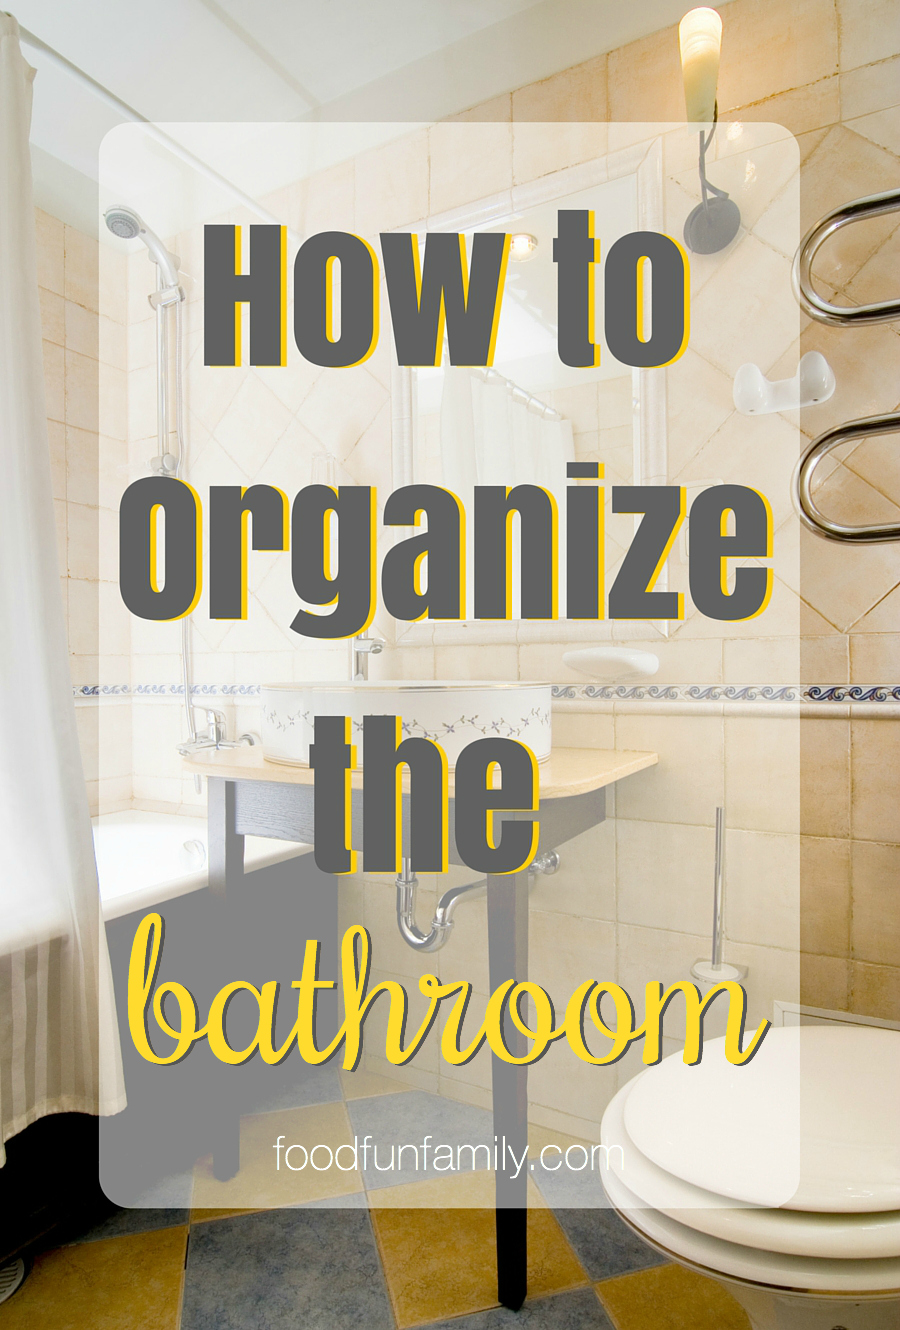 How to organize the bathroom food fun family How to organize bathroom